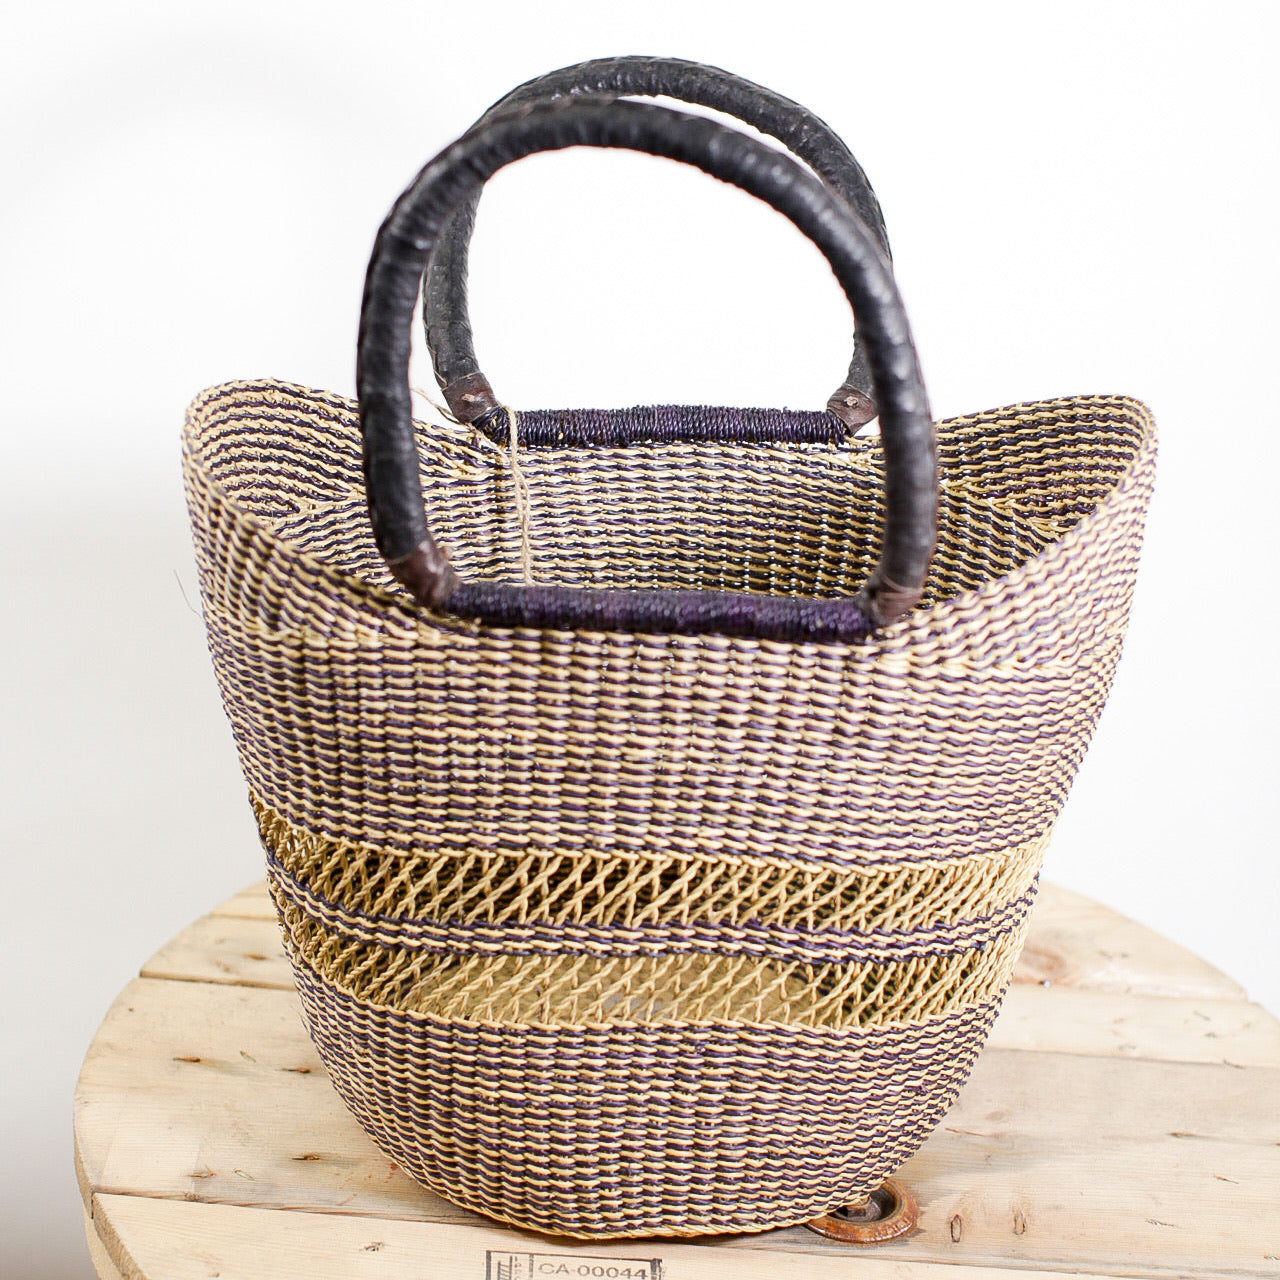 Shopping Basket - Black with woven center